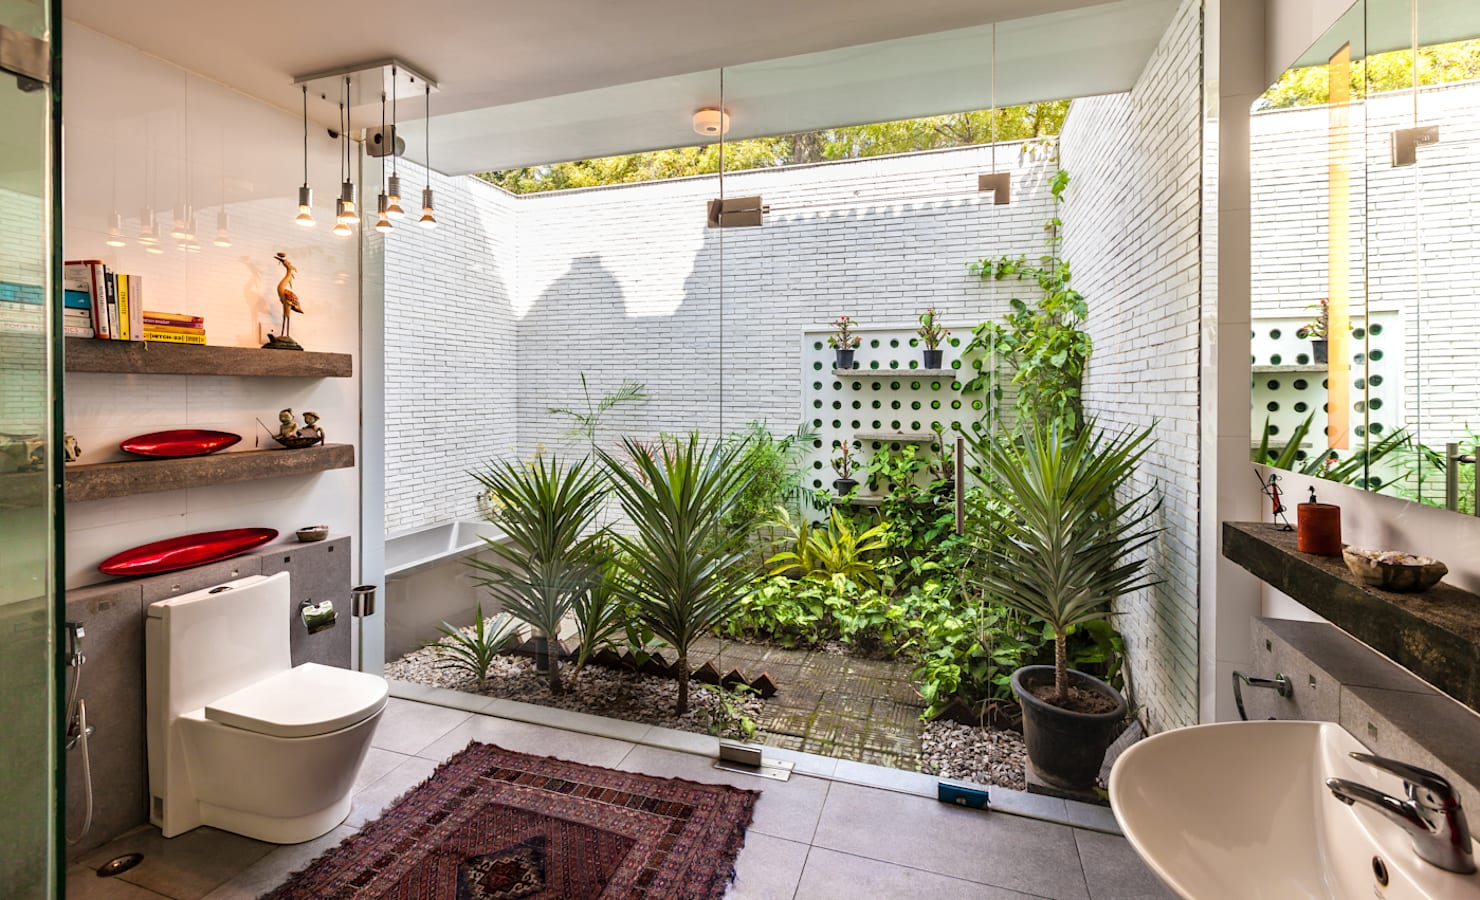 11 easy ideas to make your bathroom look like a hotel